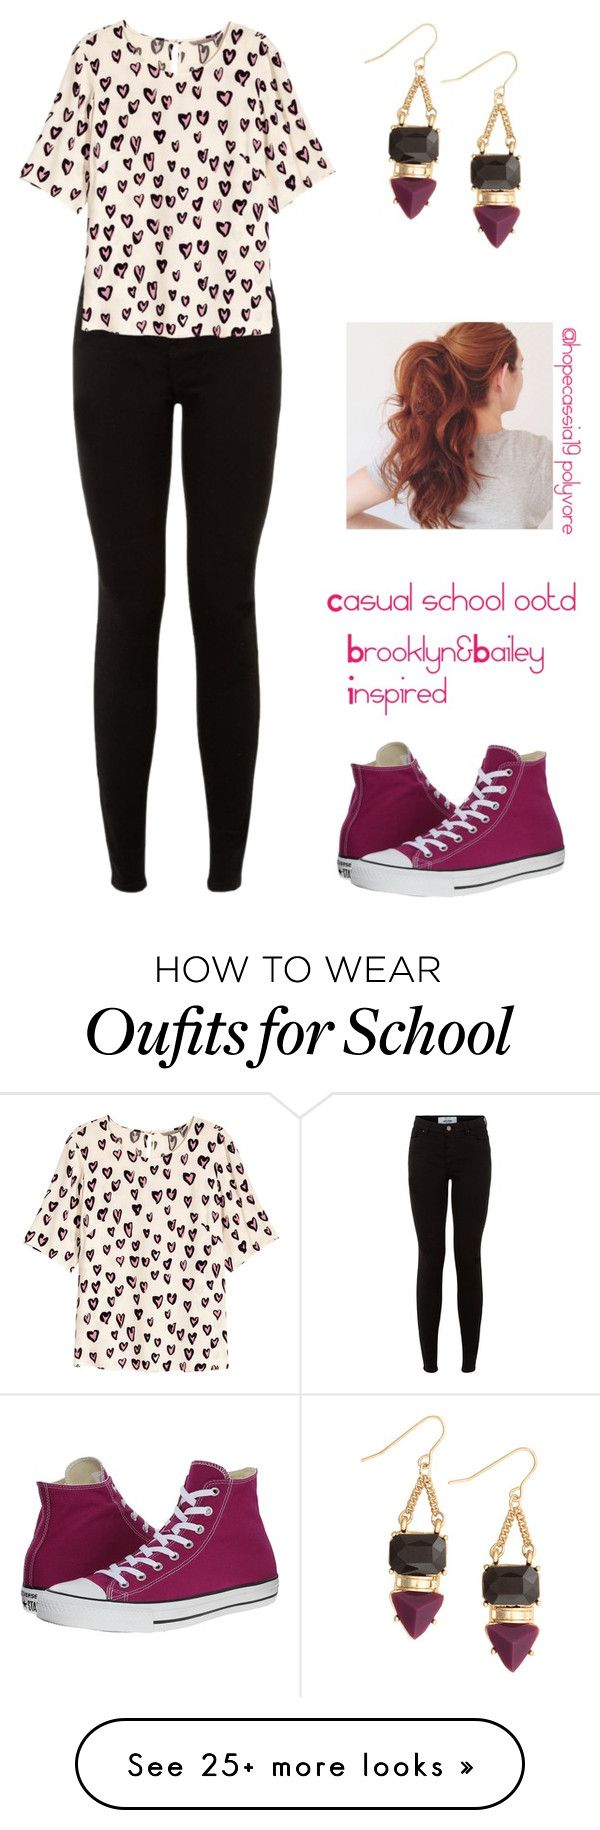 """Casual school ootd"" by hopecassia19 on Polyvore featuring moda, H&M i Converse"